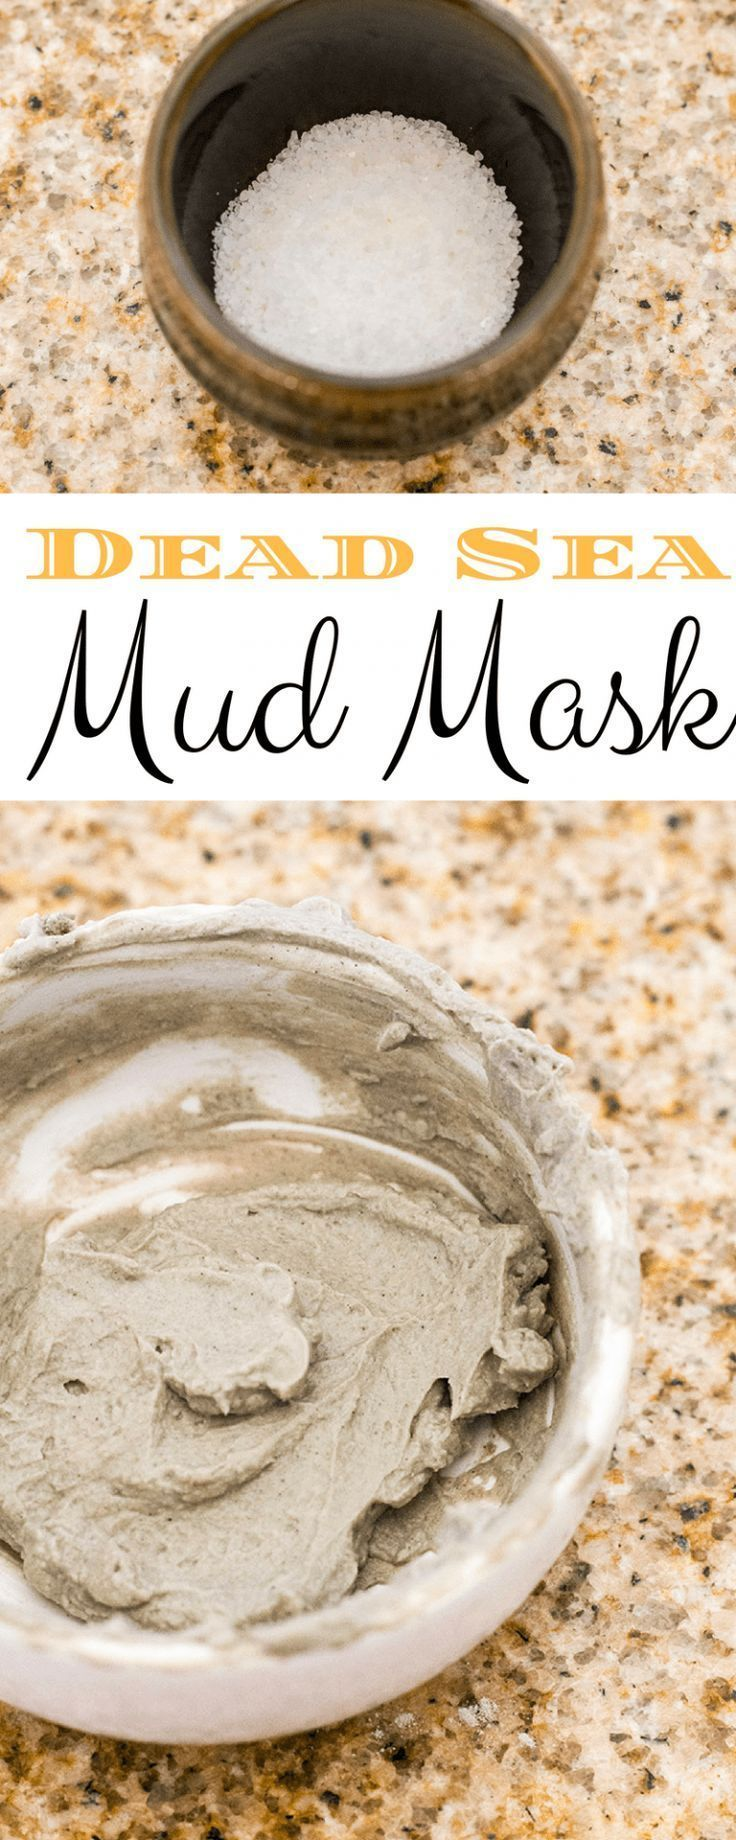 # Skincare Recipes-Homemade Mud Mask from the Dead Sea - #Tot #Hausgeme ...  -  Hautpflege-Rezepte